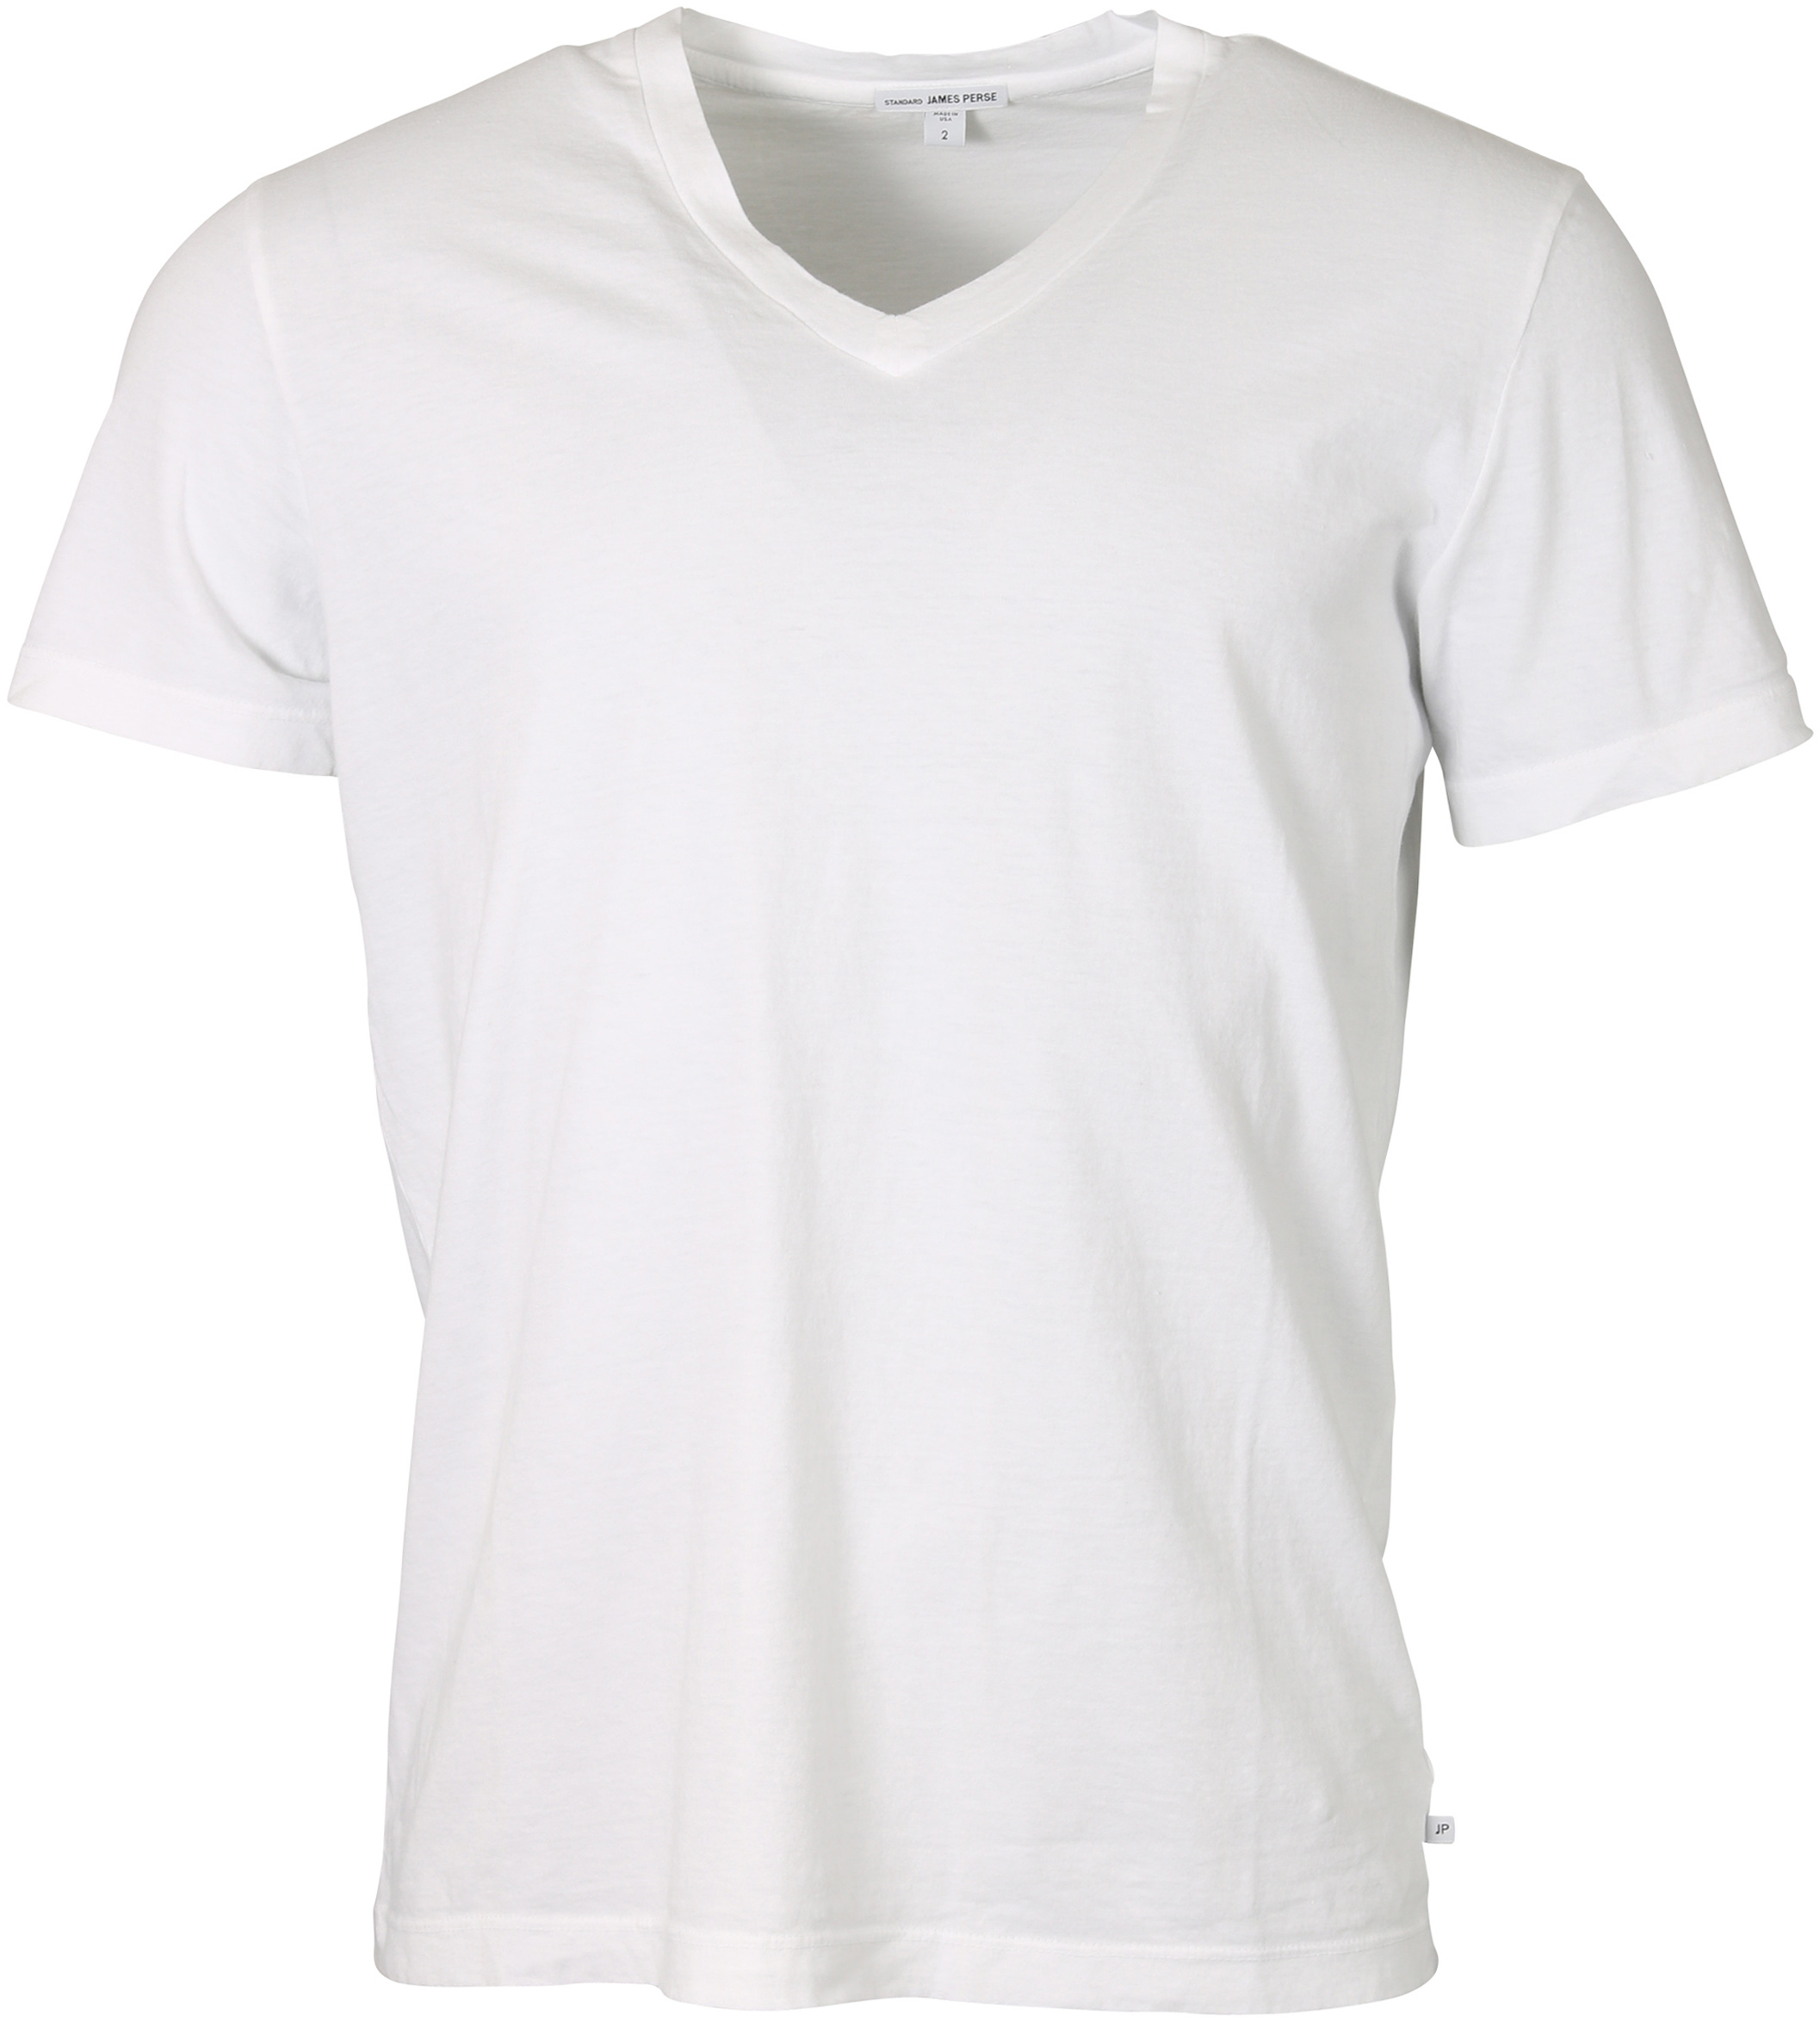 Men S James Perse T Shirt V Neck White Www Hechler Nickel Com